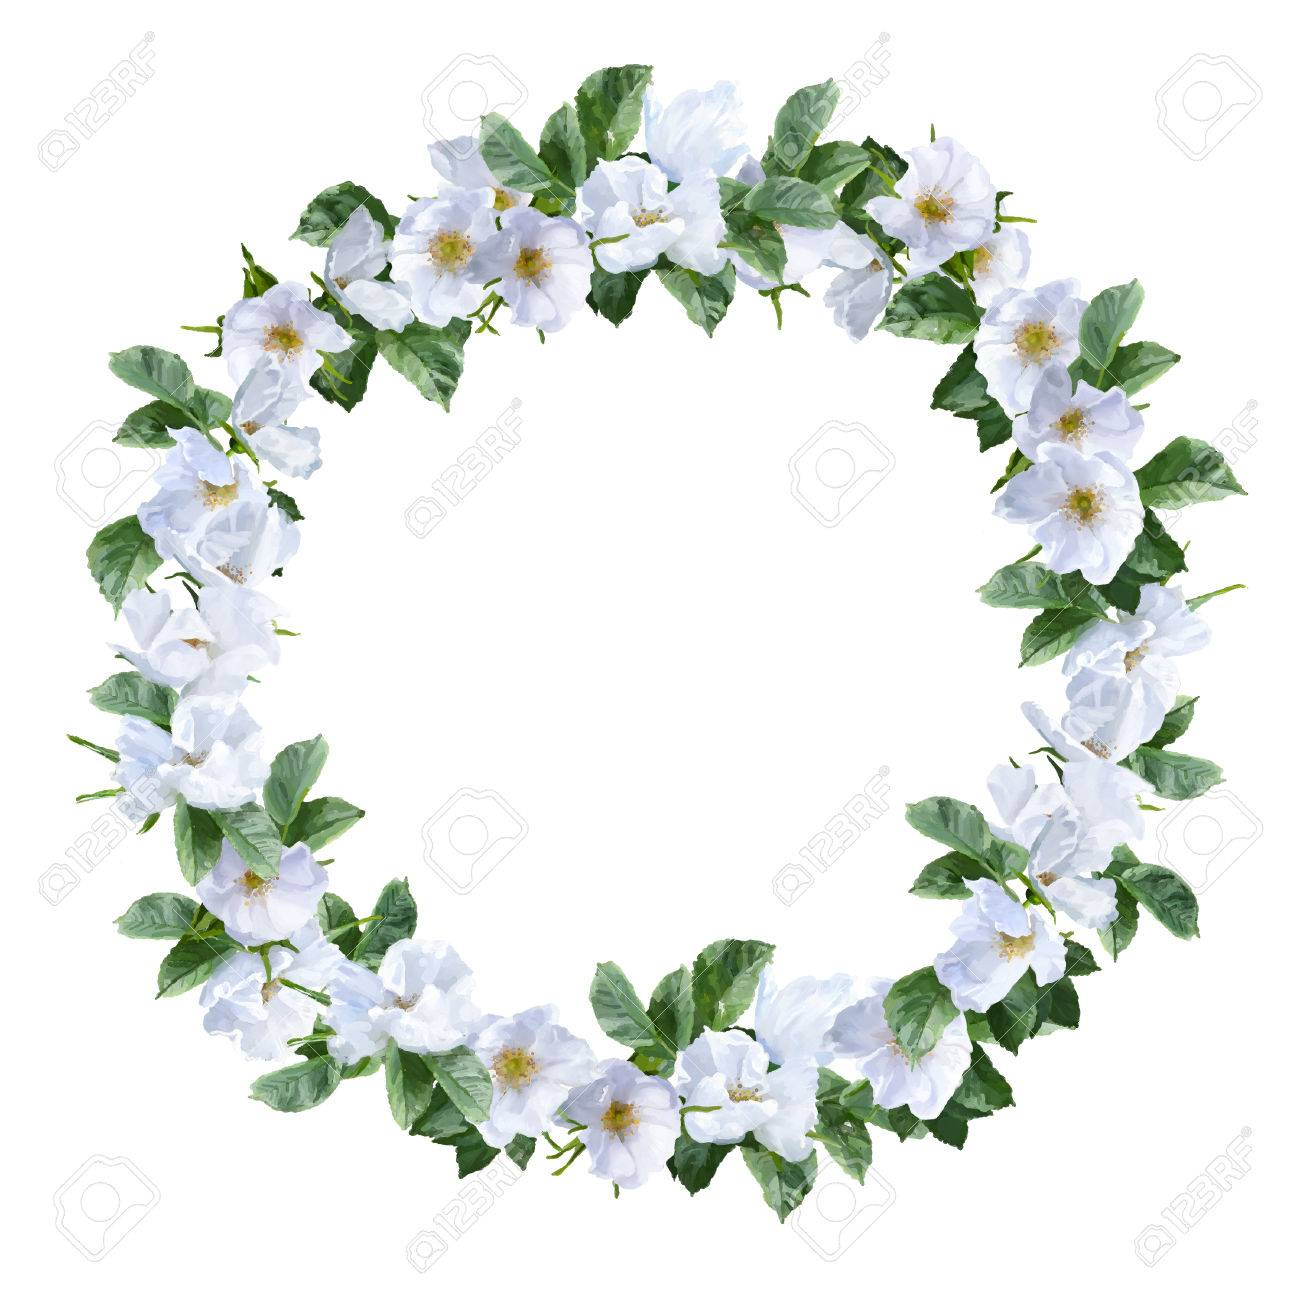 Watercolor decorative painting wreath with white summer flowers stock photo watercolor decorative painting wreath with white summer flowers mightylinksfo